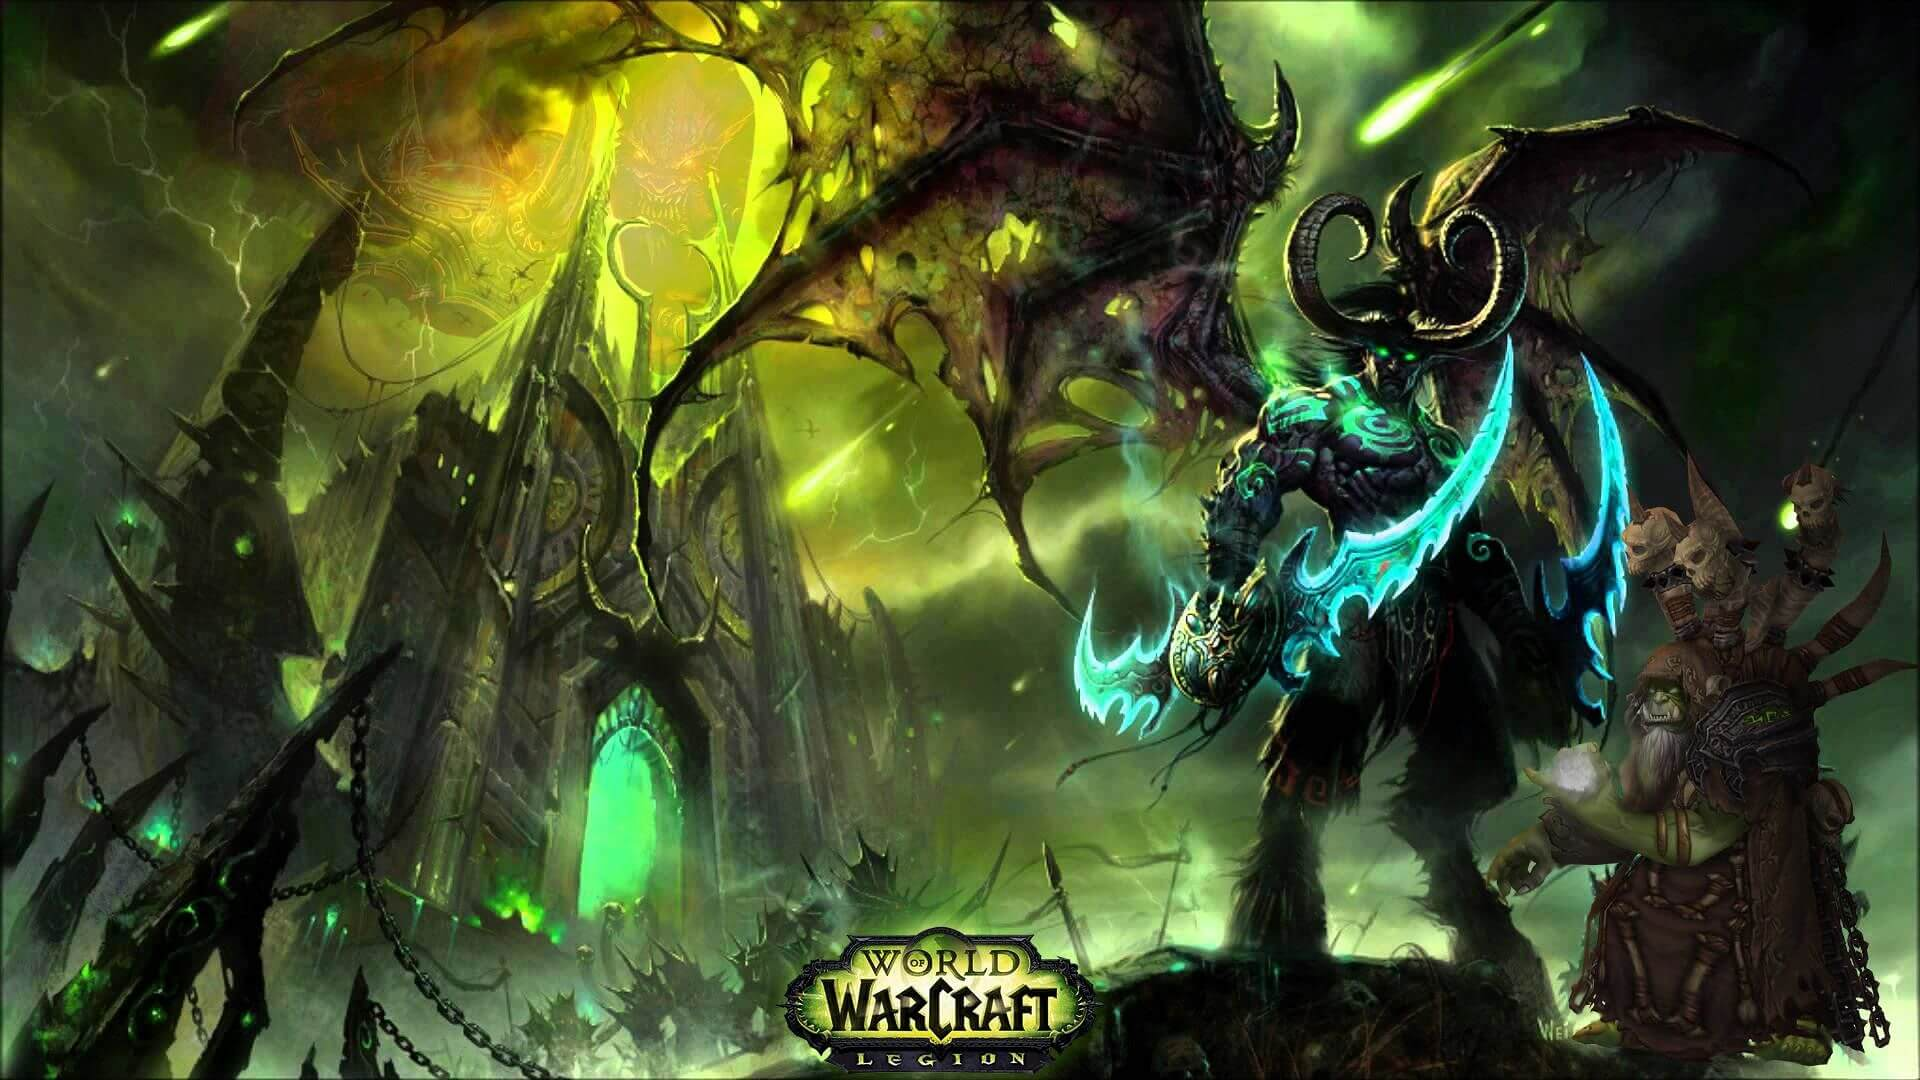 http://3x3x5.ir/dl/2020/11/world-of-warcraft-4.3.4.jpg